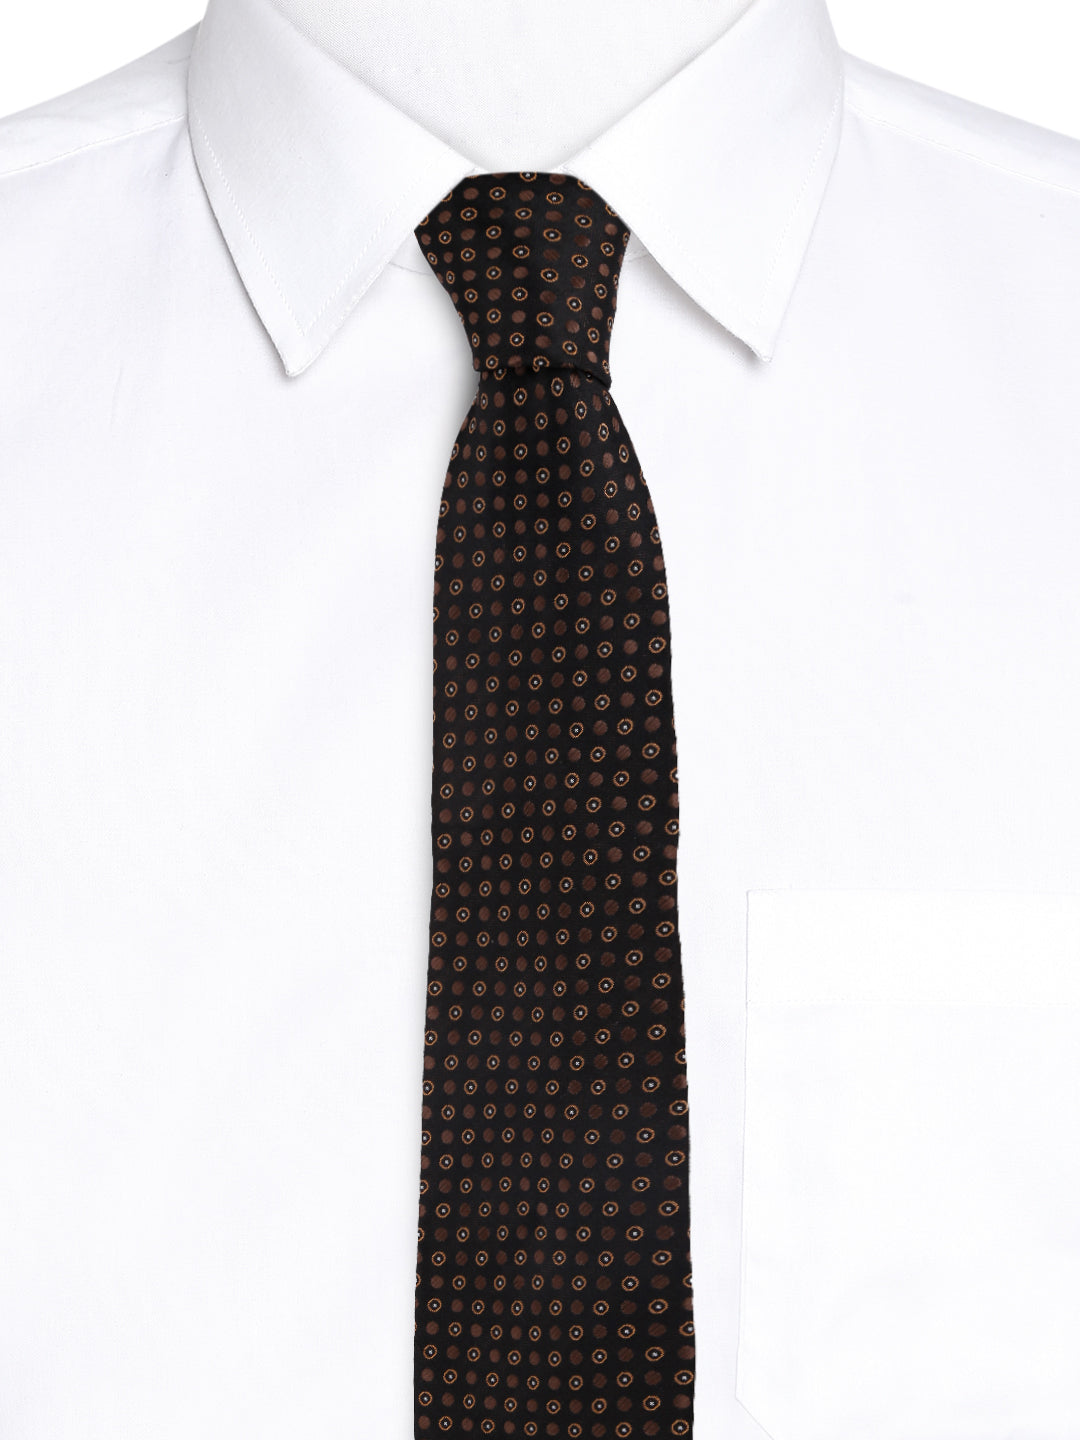 Zido Tie for Men TJQ247